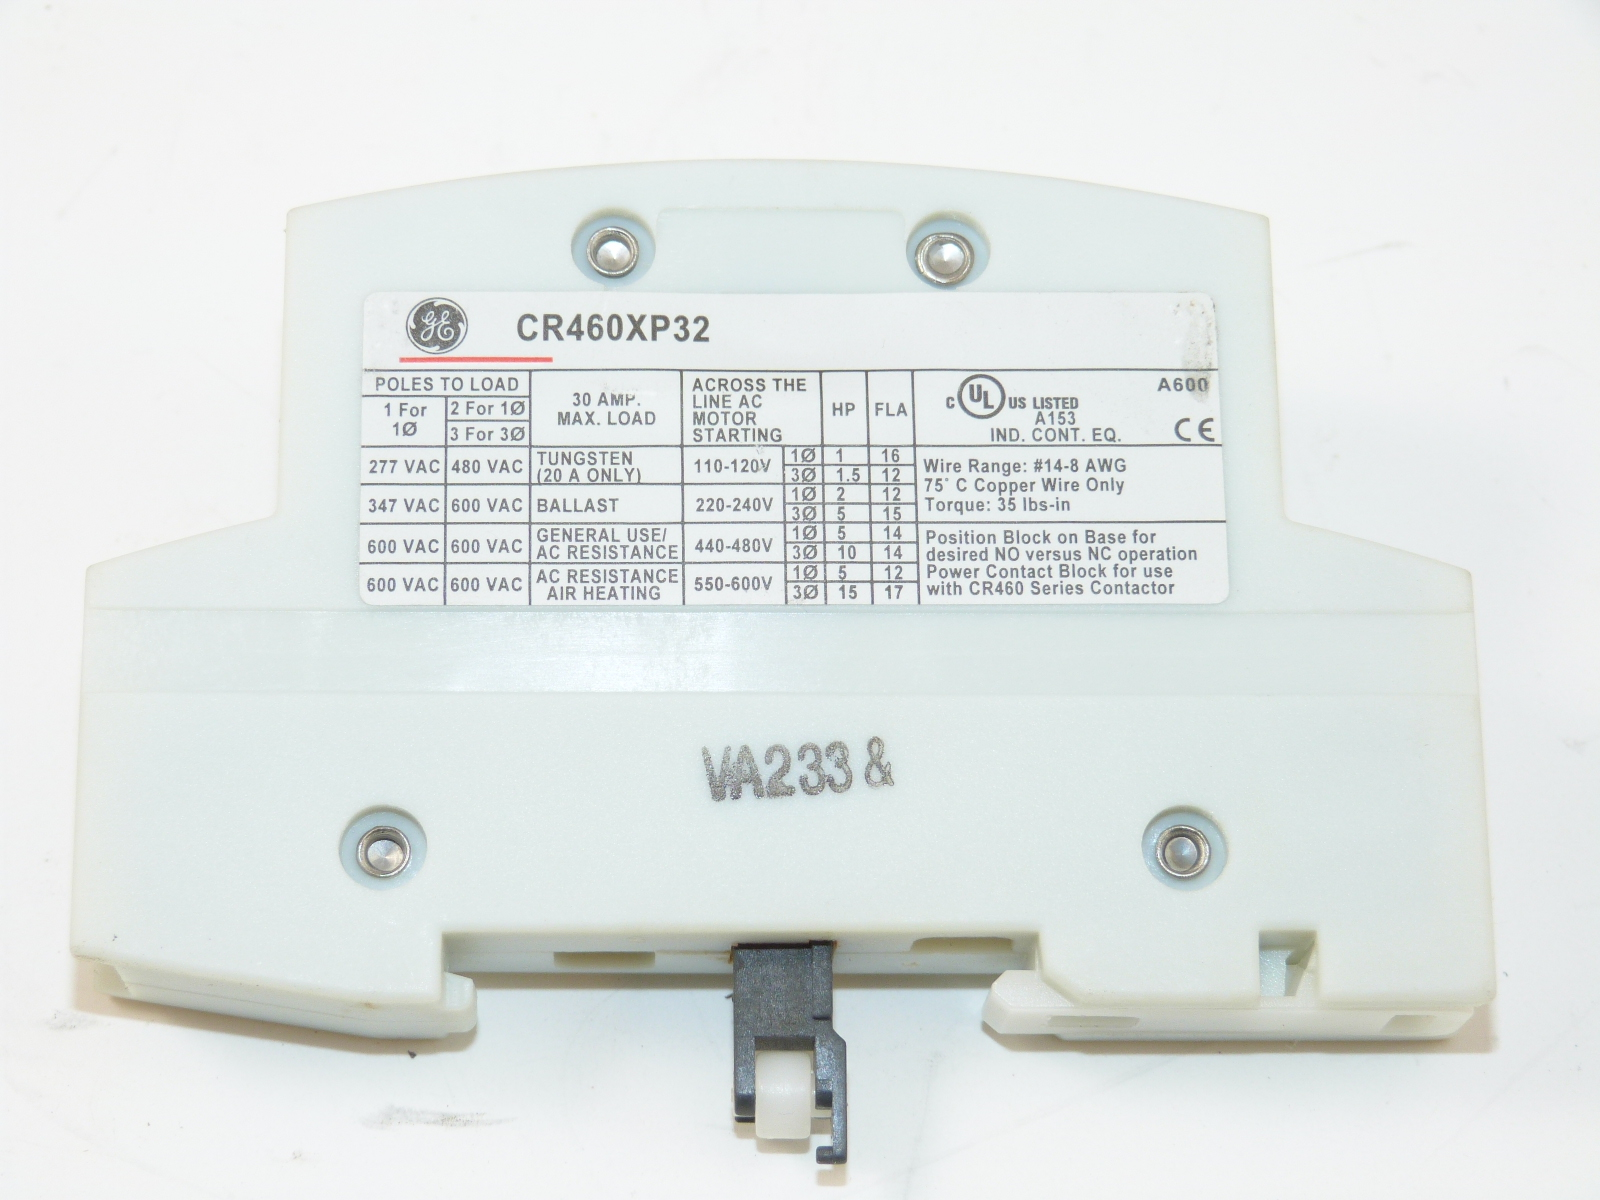 ge cr460xp32 power pole 2 pole for lighting contactor walmart com rh walmart com 1 Pole Contactor 4 Pole 50 Amp Contactor